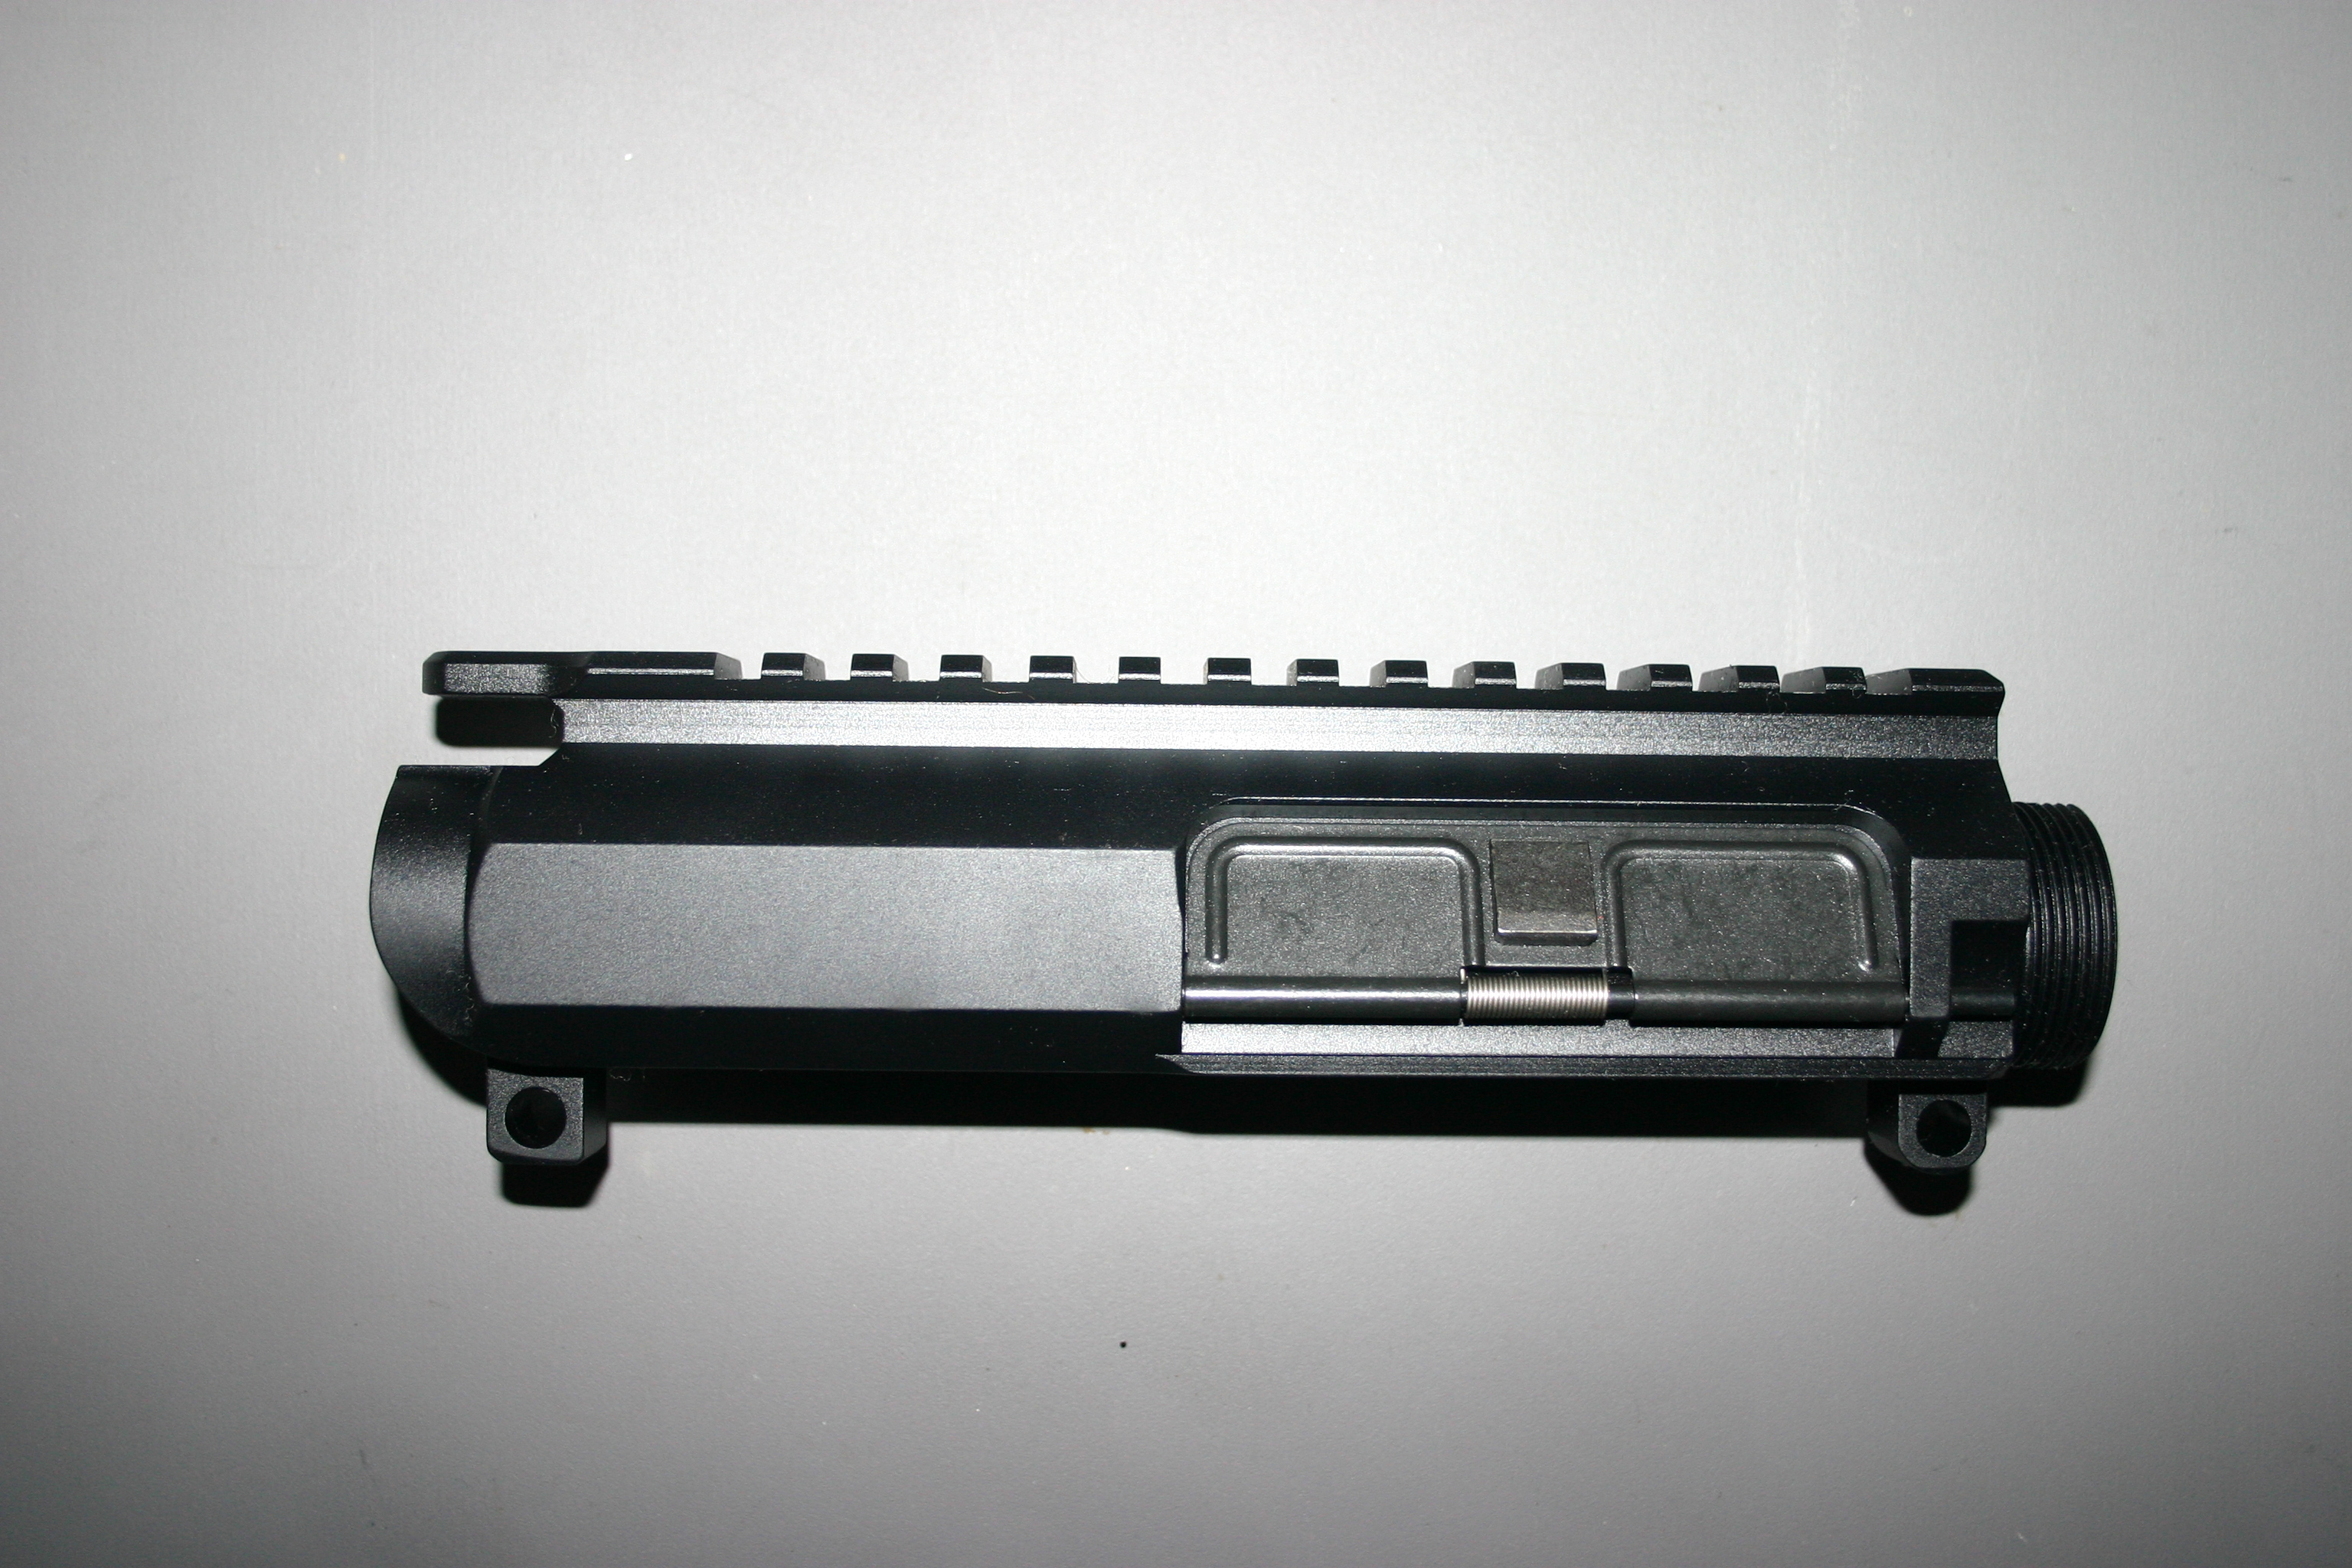 Ares Arms Smooth Side Upper